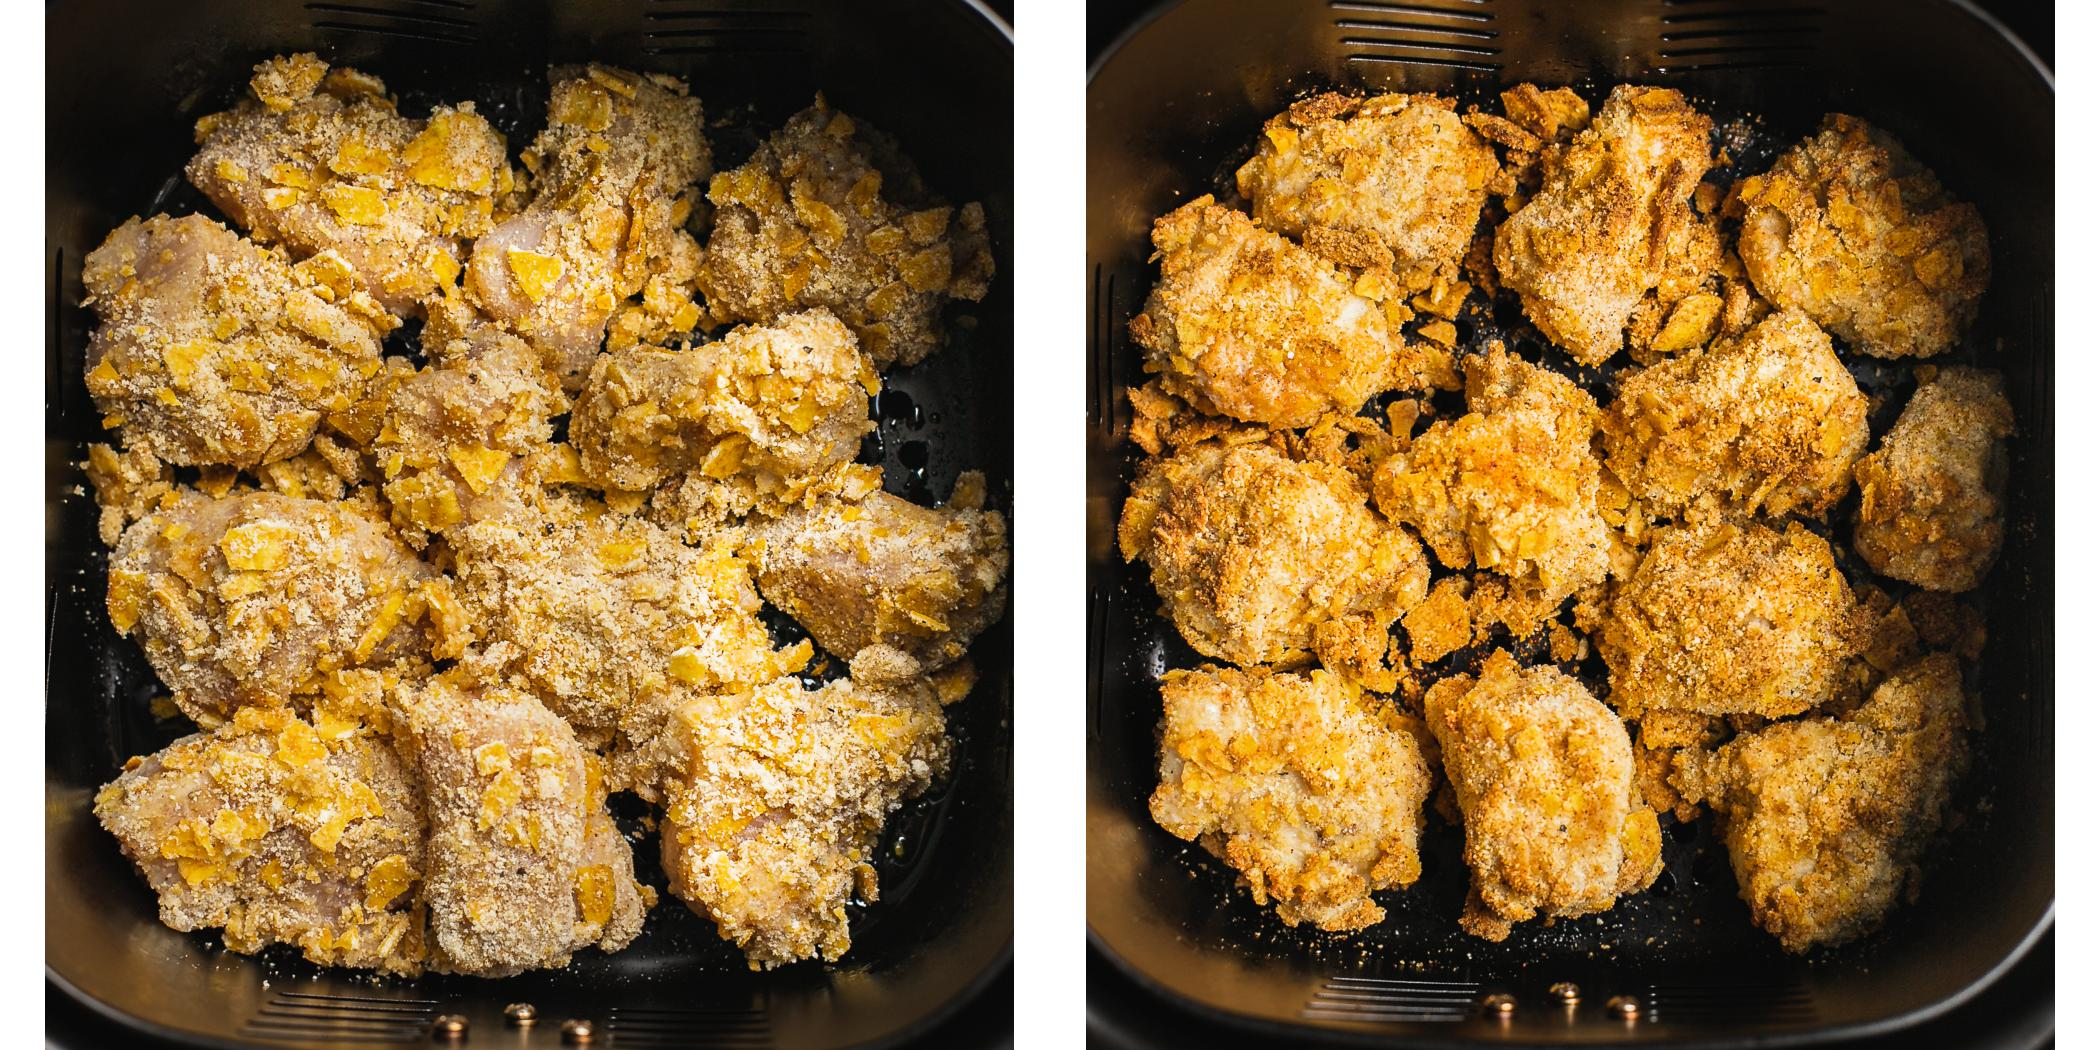 before and after picture of almond and coconut flour crusted healthy chicken nuggets in an air fryer